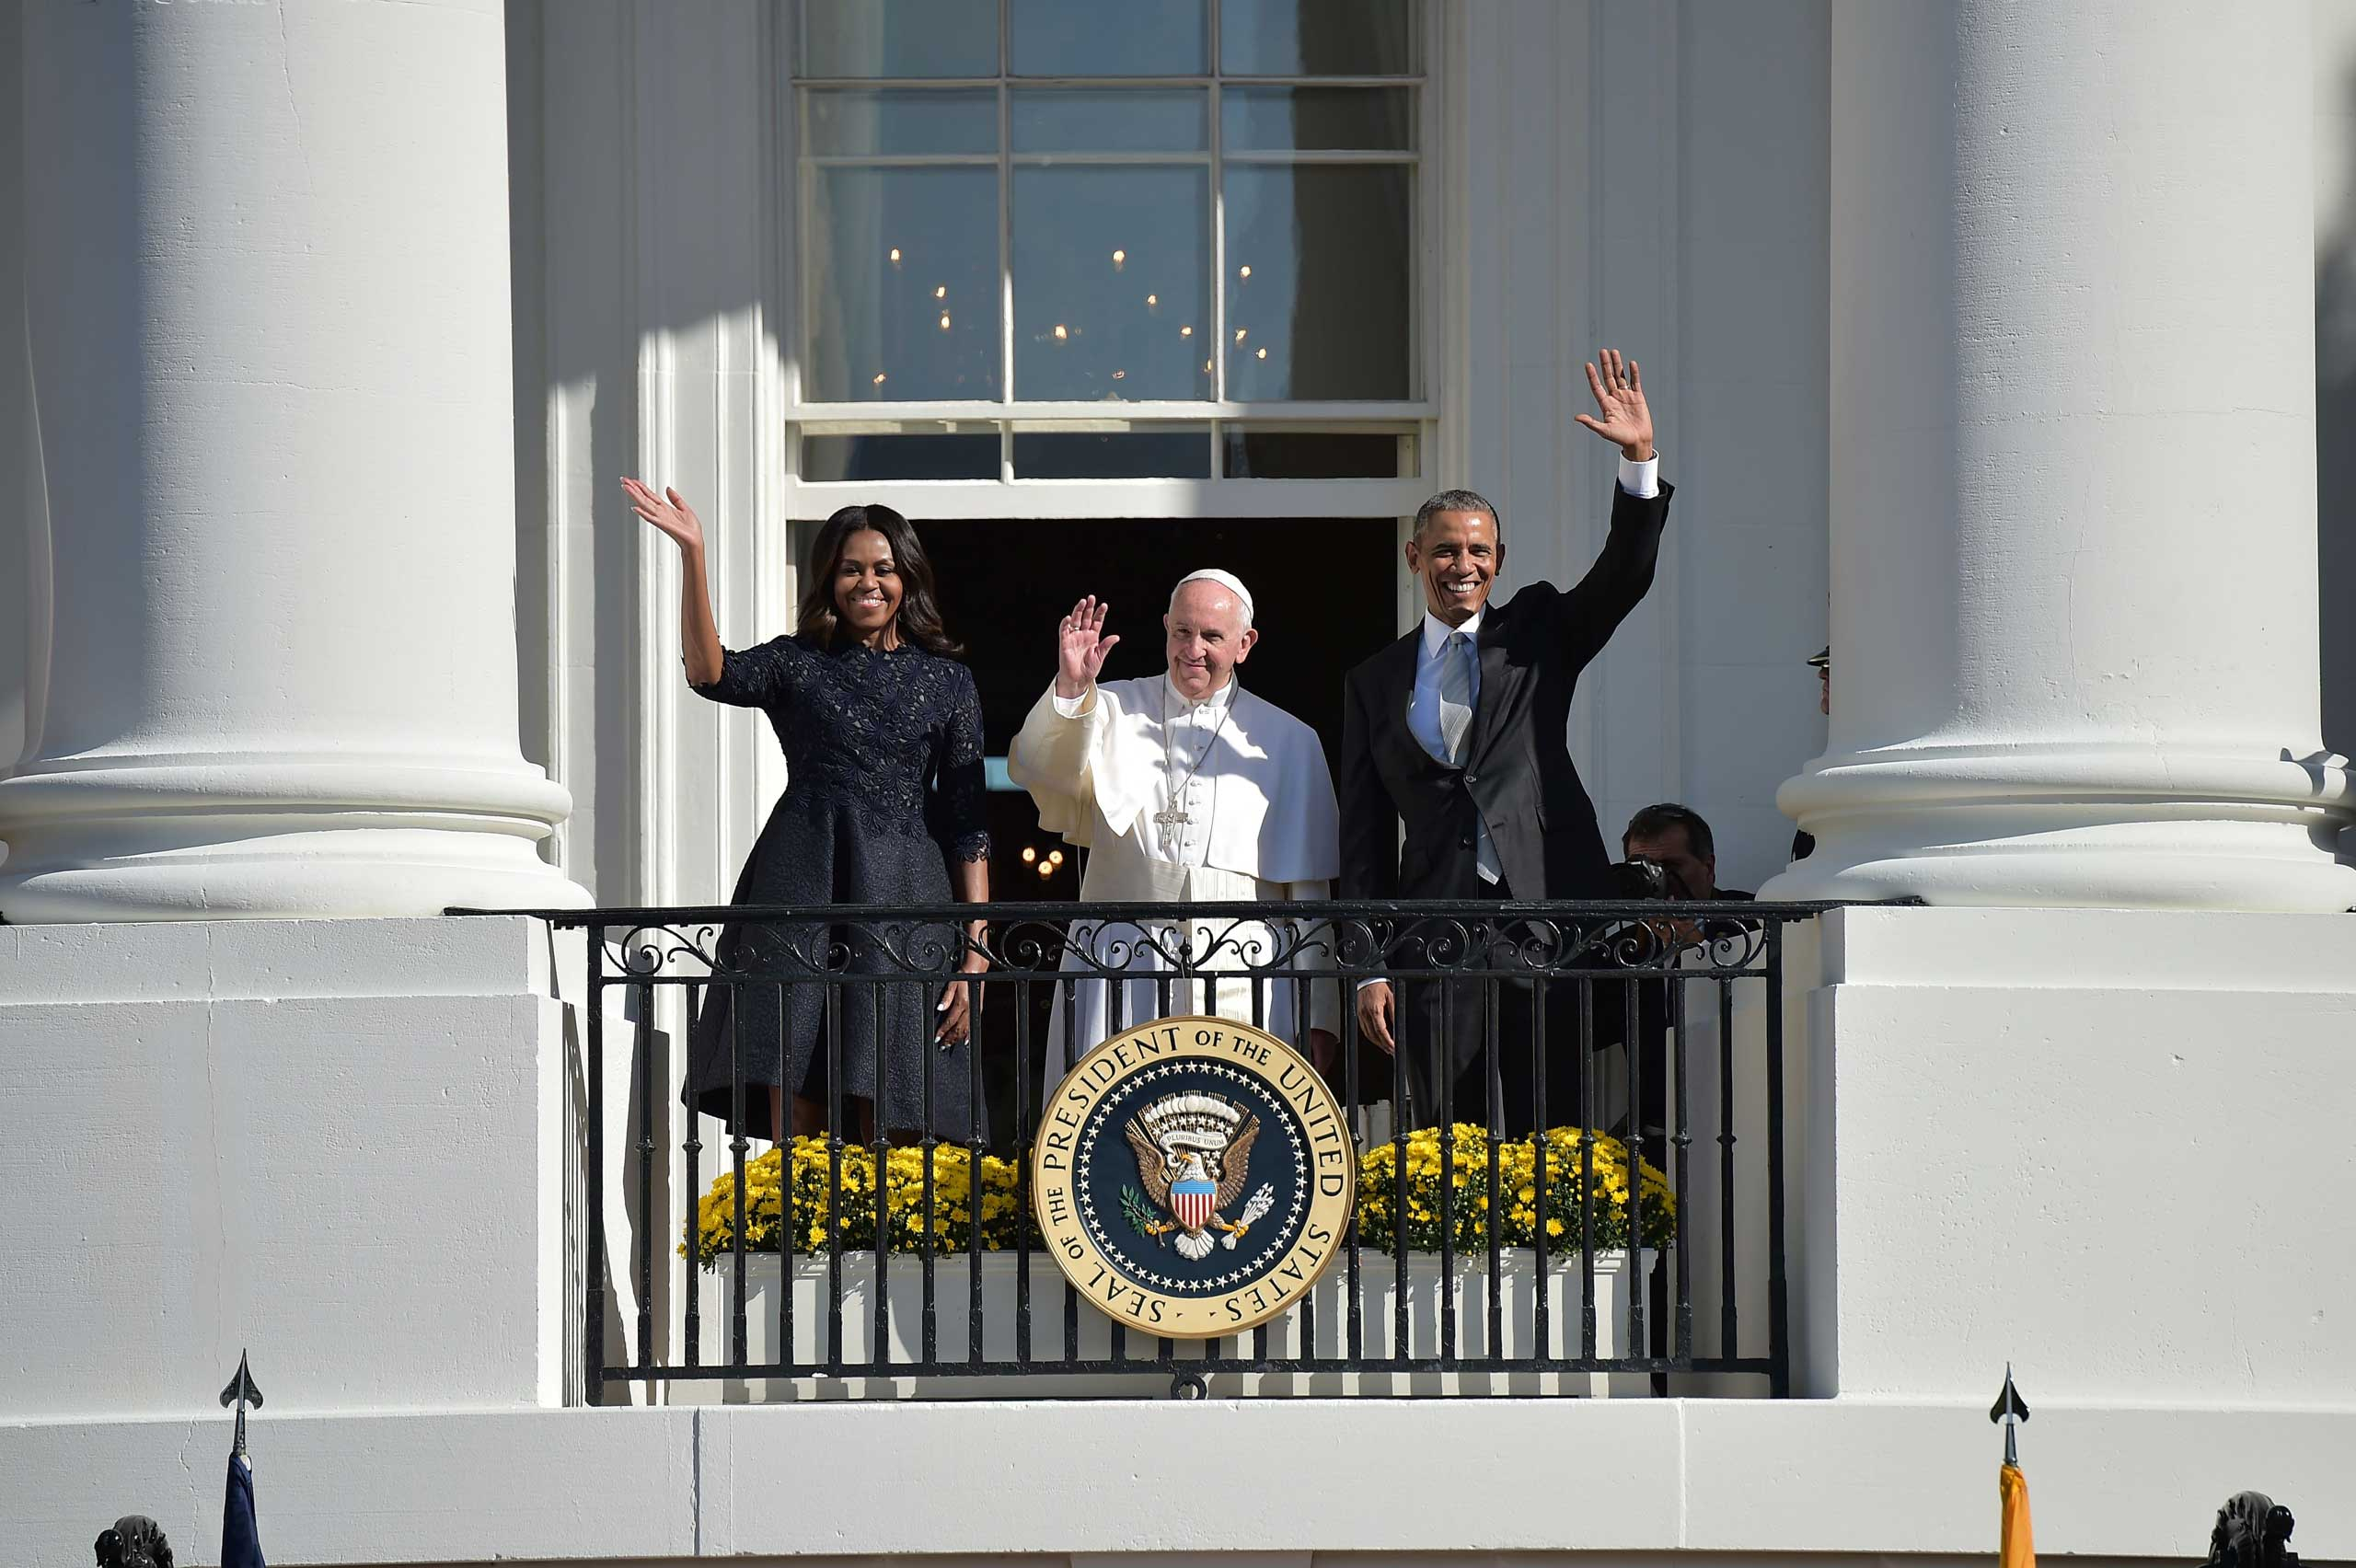 First Lady Michelle Obama, President Barack Obama, and Pope Francis wave during an arrival ceremony at the White House in Washington, on Sept. 23, 2015.